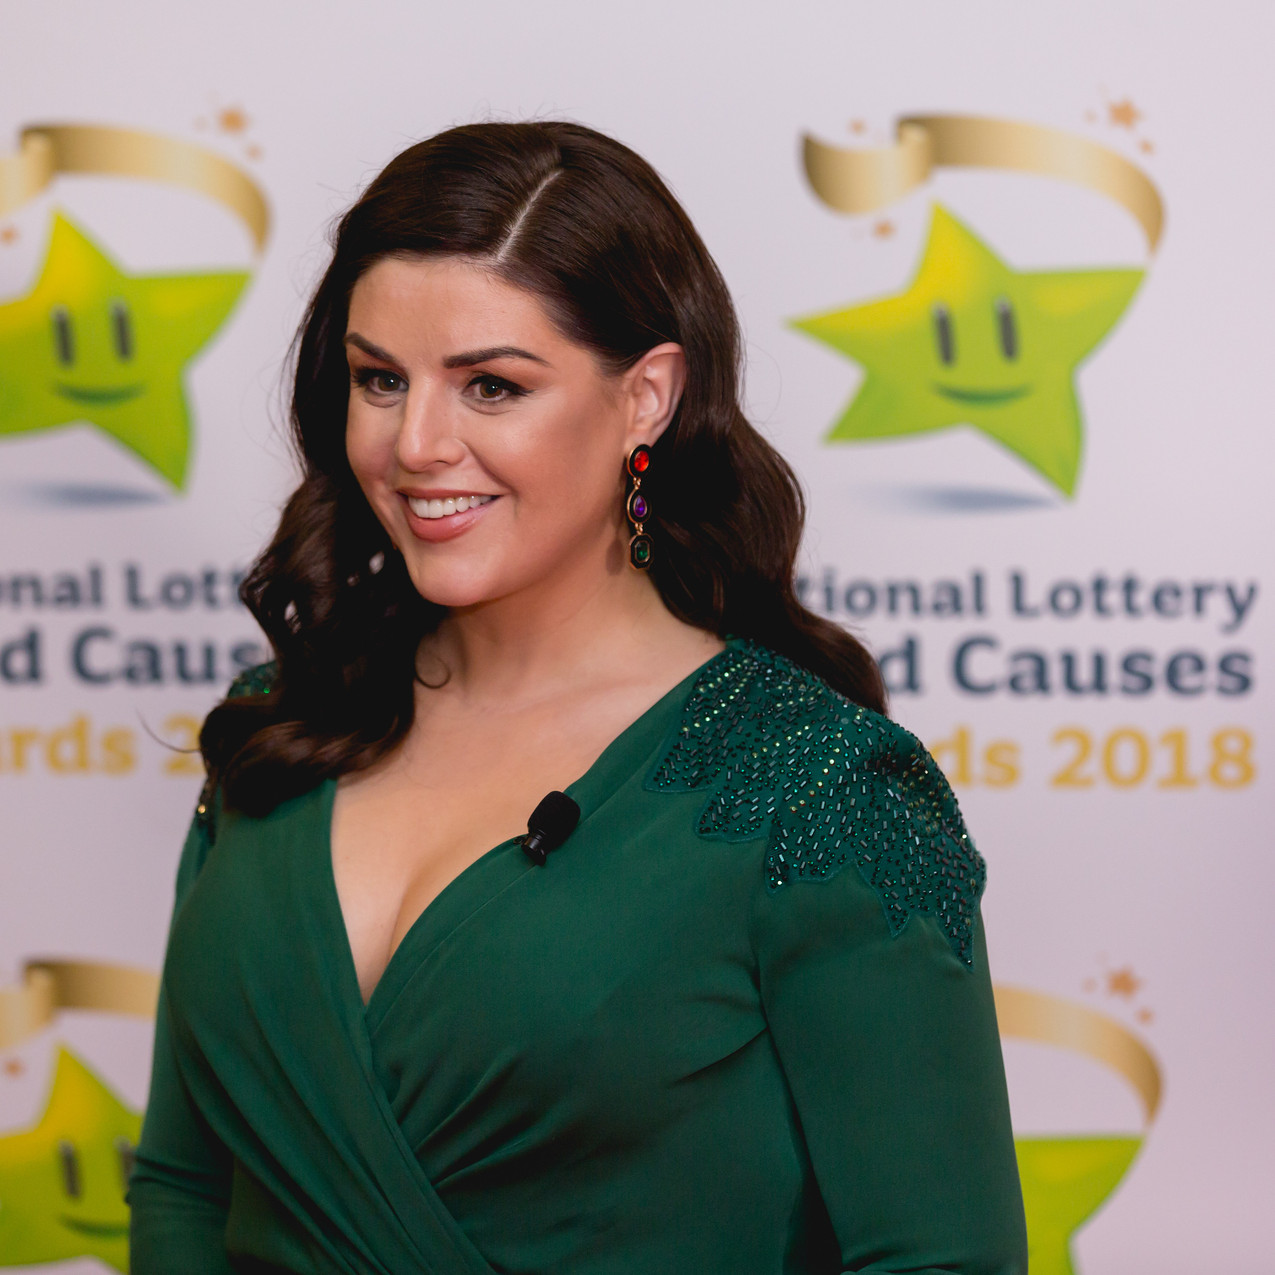 National-Lottery-Good-Causes-Awards-2018